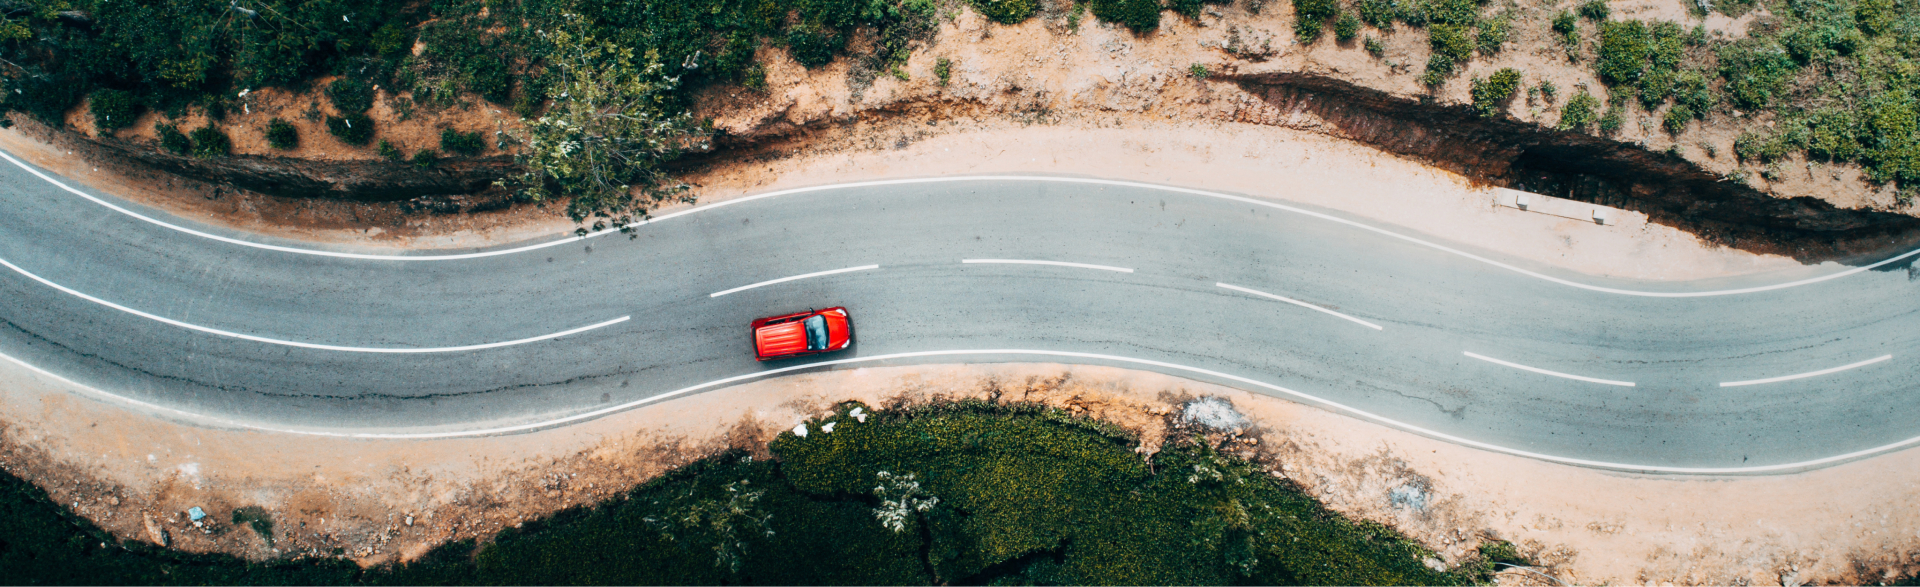 Seen from above, a red car drives on a curving road.